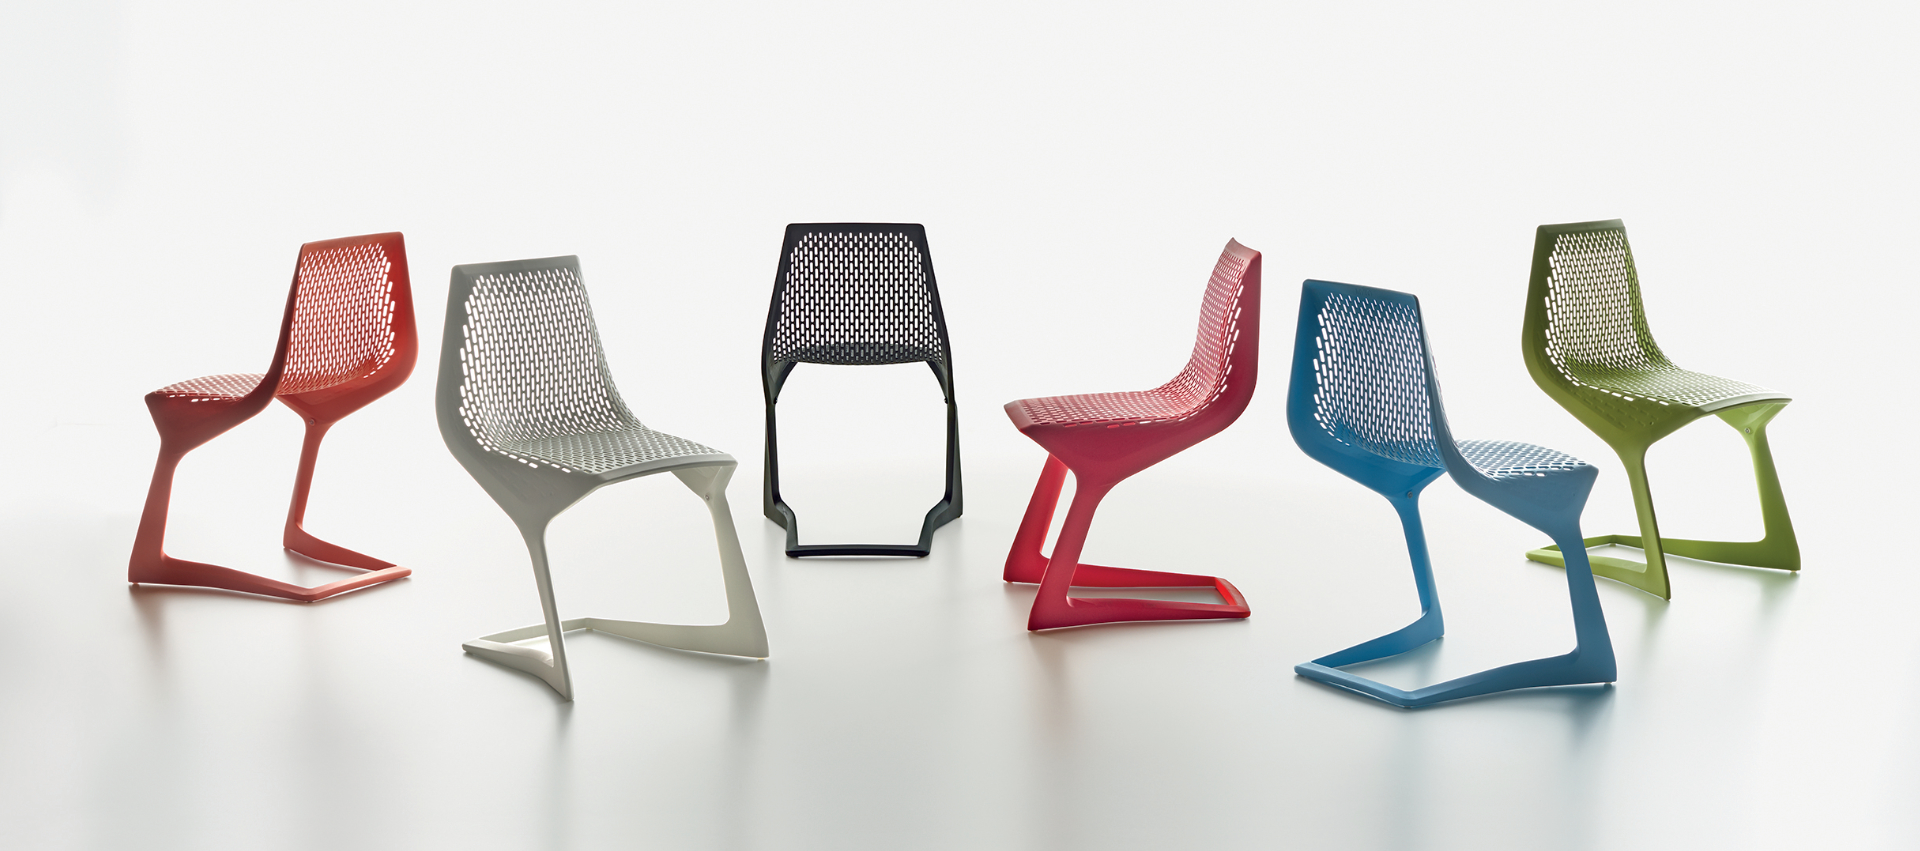 Plank - MYTO chair, plastic, pure-orange, white, black, traffic-red, light-blue, yellow-green.